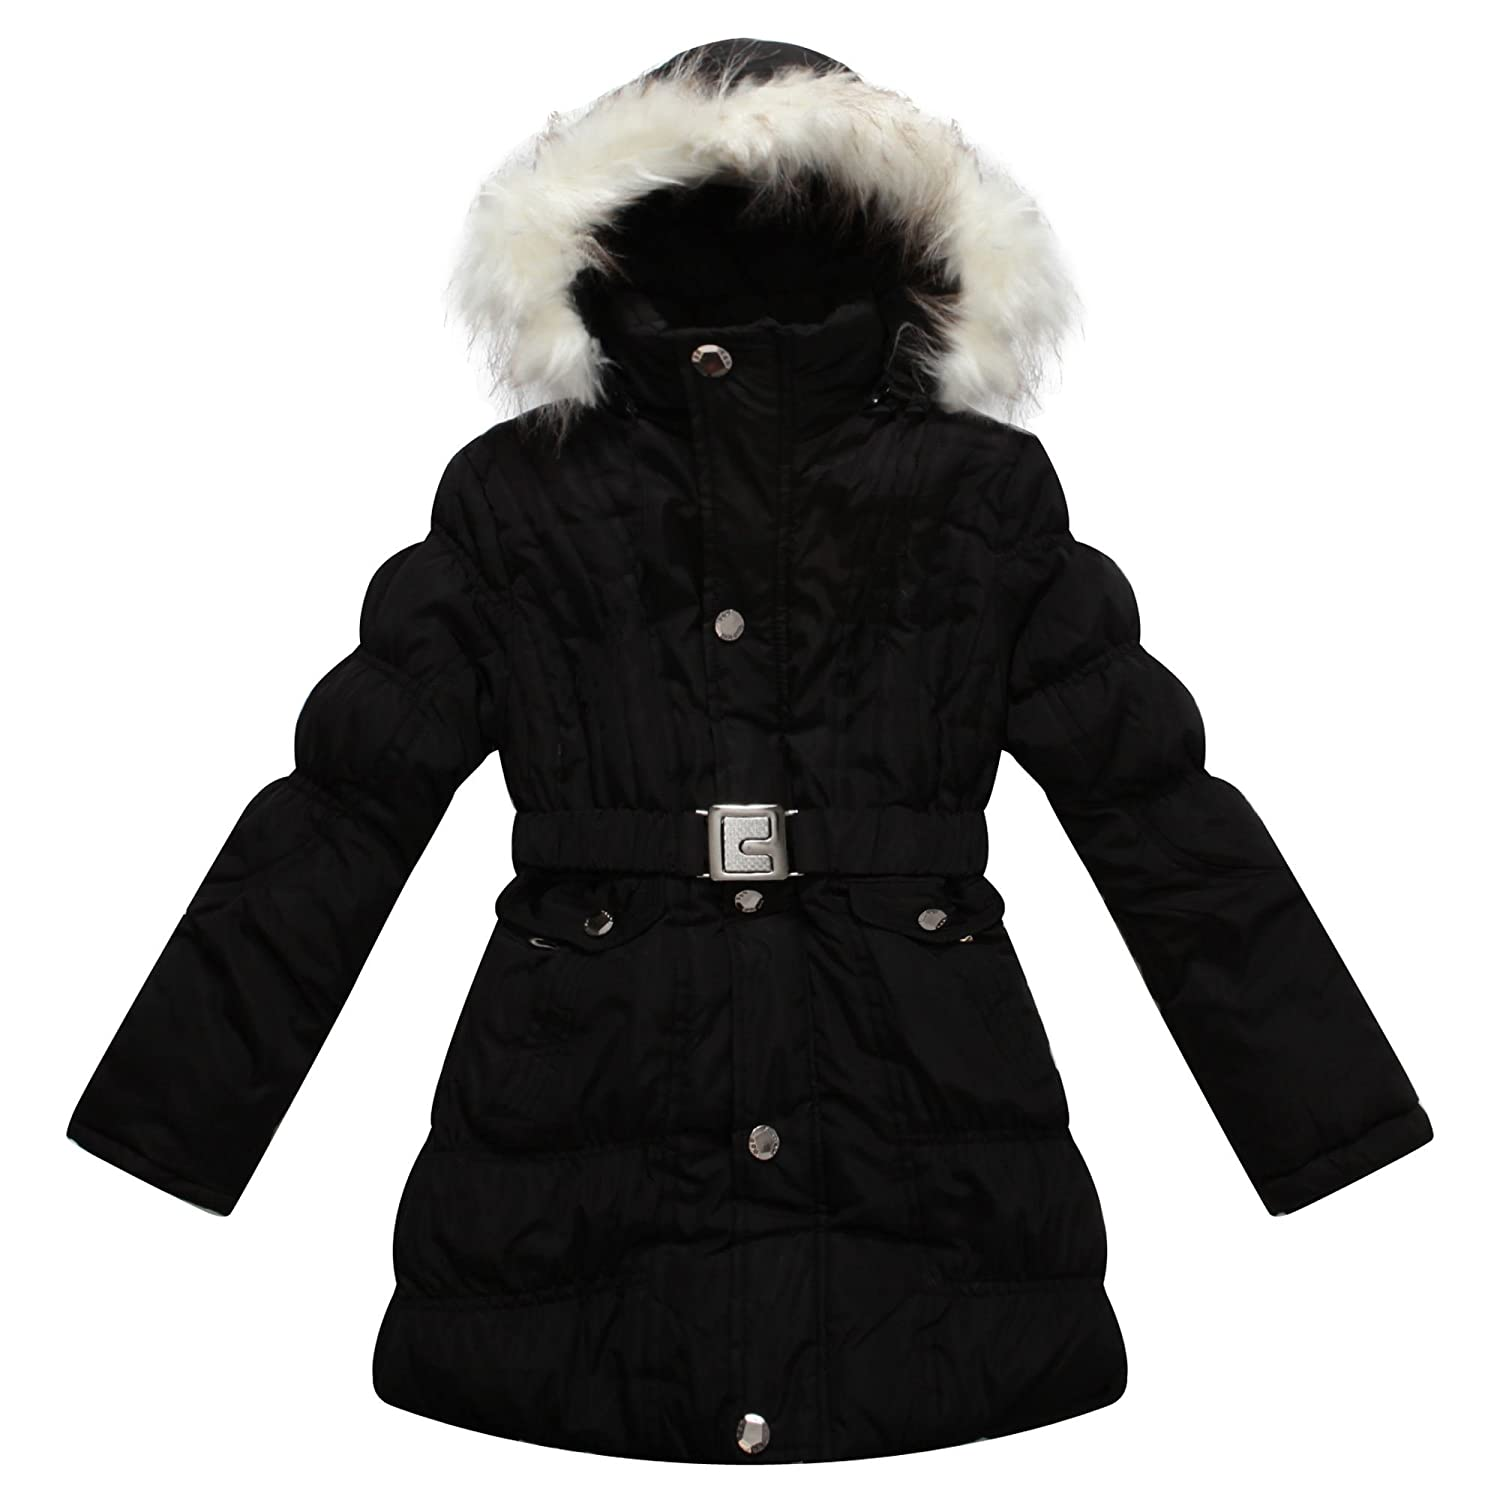 Amazon.com: Richie House Big Girls' Padded Winter Jacket with Belt ...